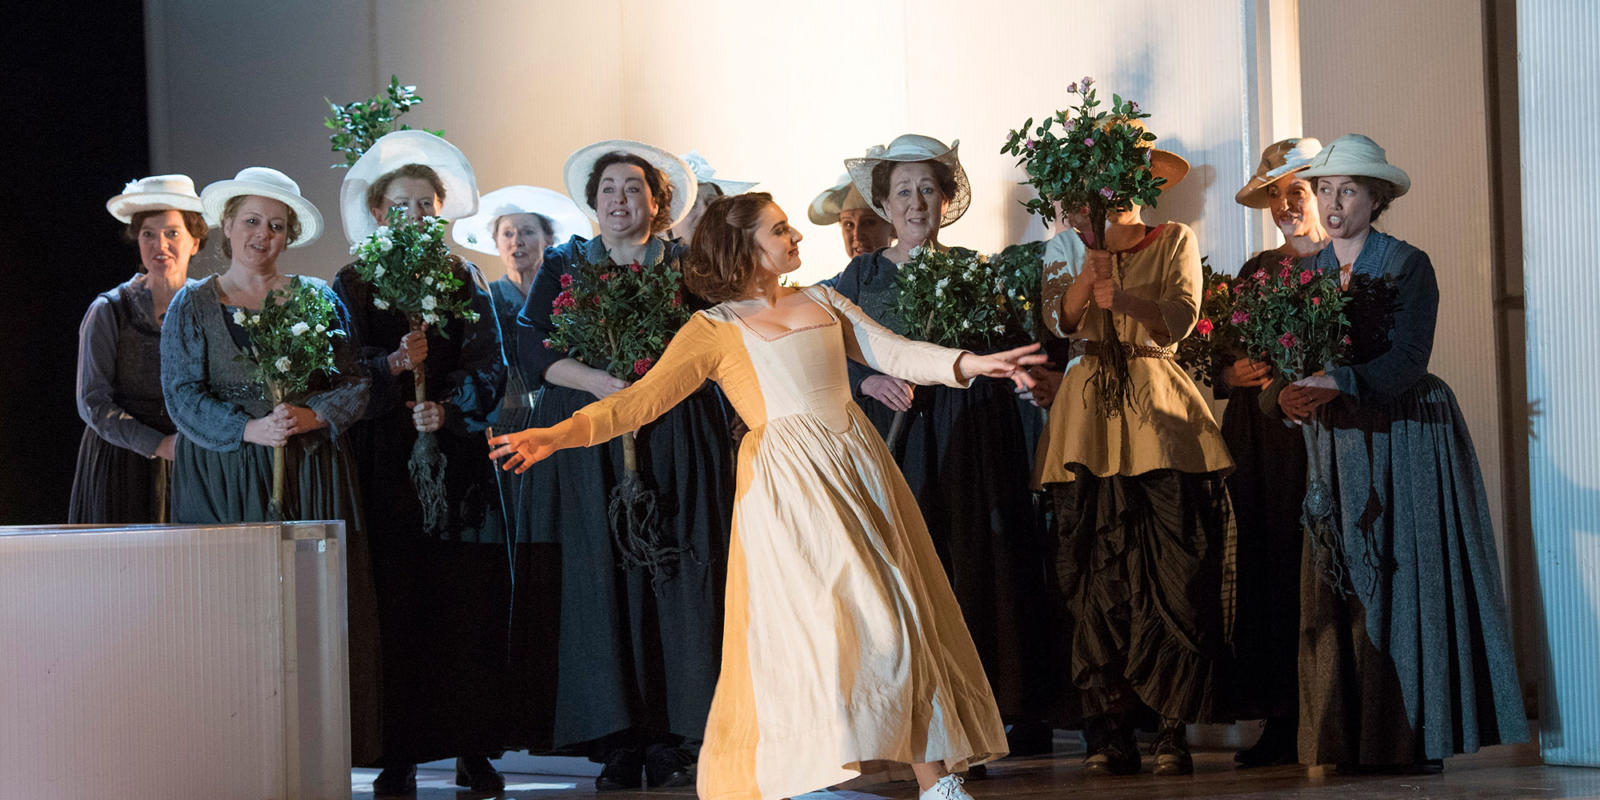 ENO 17/18: The Marriage of Figaro Alison Rose and the female members of the ENO Chorus (c) Alastair Muir